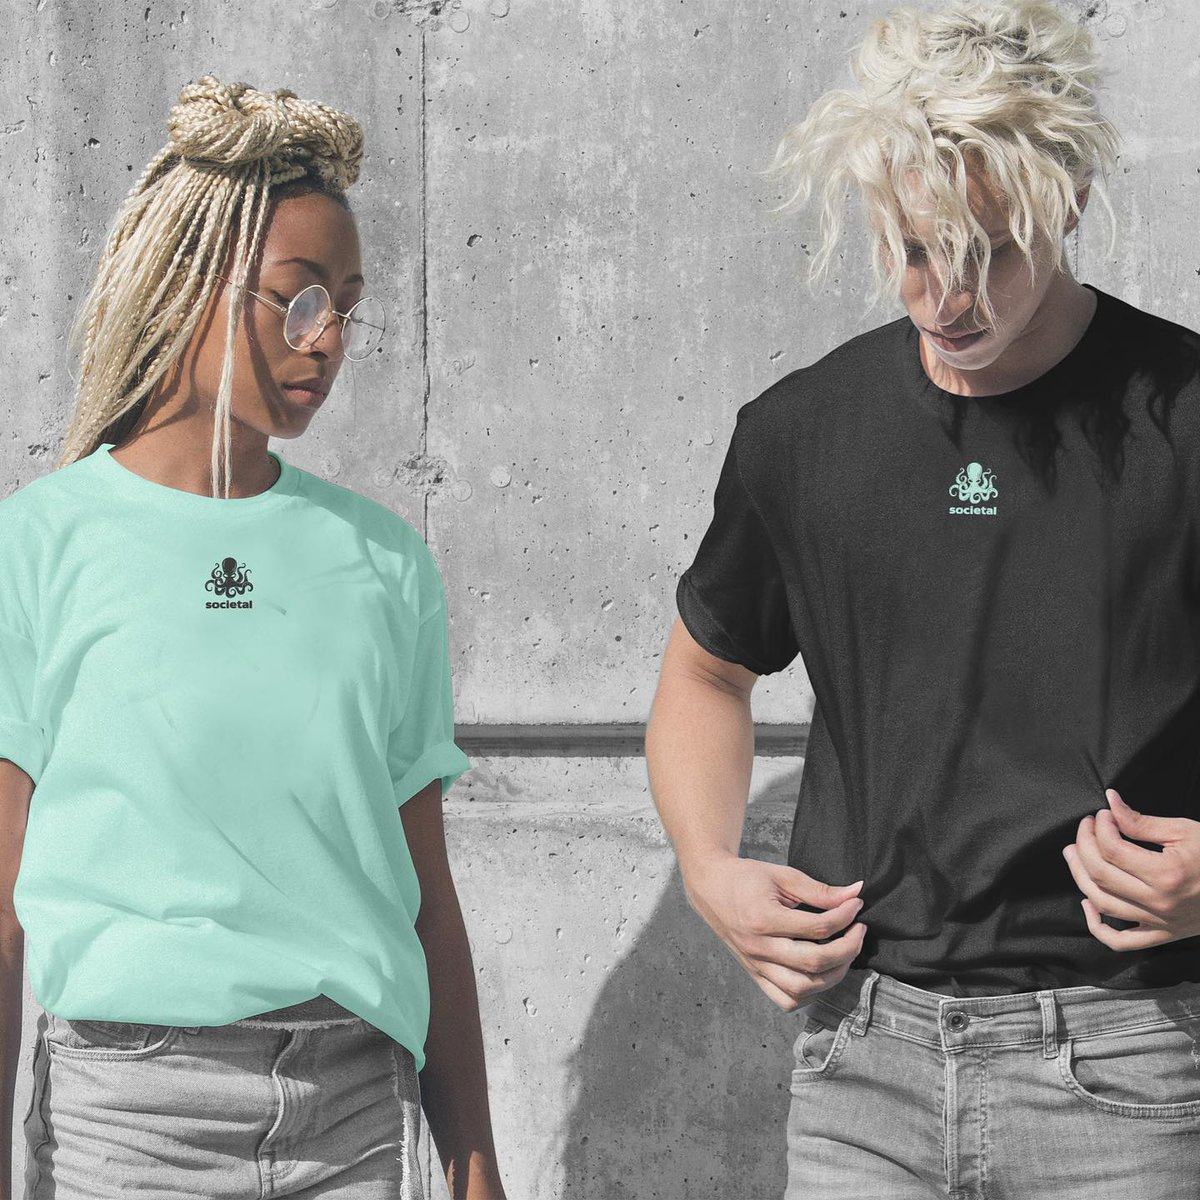 #WeAreSocietala socially conscious#ecofriendlybrand and force for change. We help stop #poverty by selling products made in an#ethicalfashionandbelieve thatstyle &sustainabilitycancoexist. #political-T-Shirts #eco-friendly-t-shirts… http://dlvr.it/Rb8qVCpic.twitter.com/R1bOebn6T6